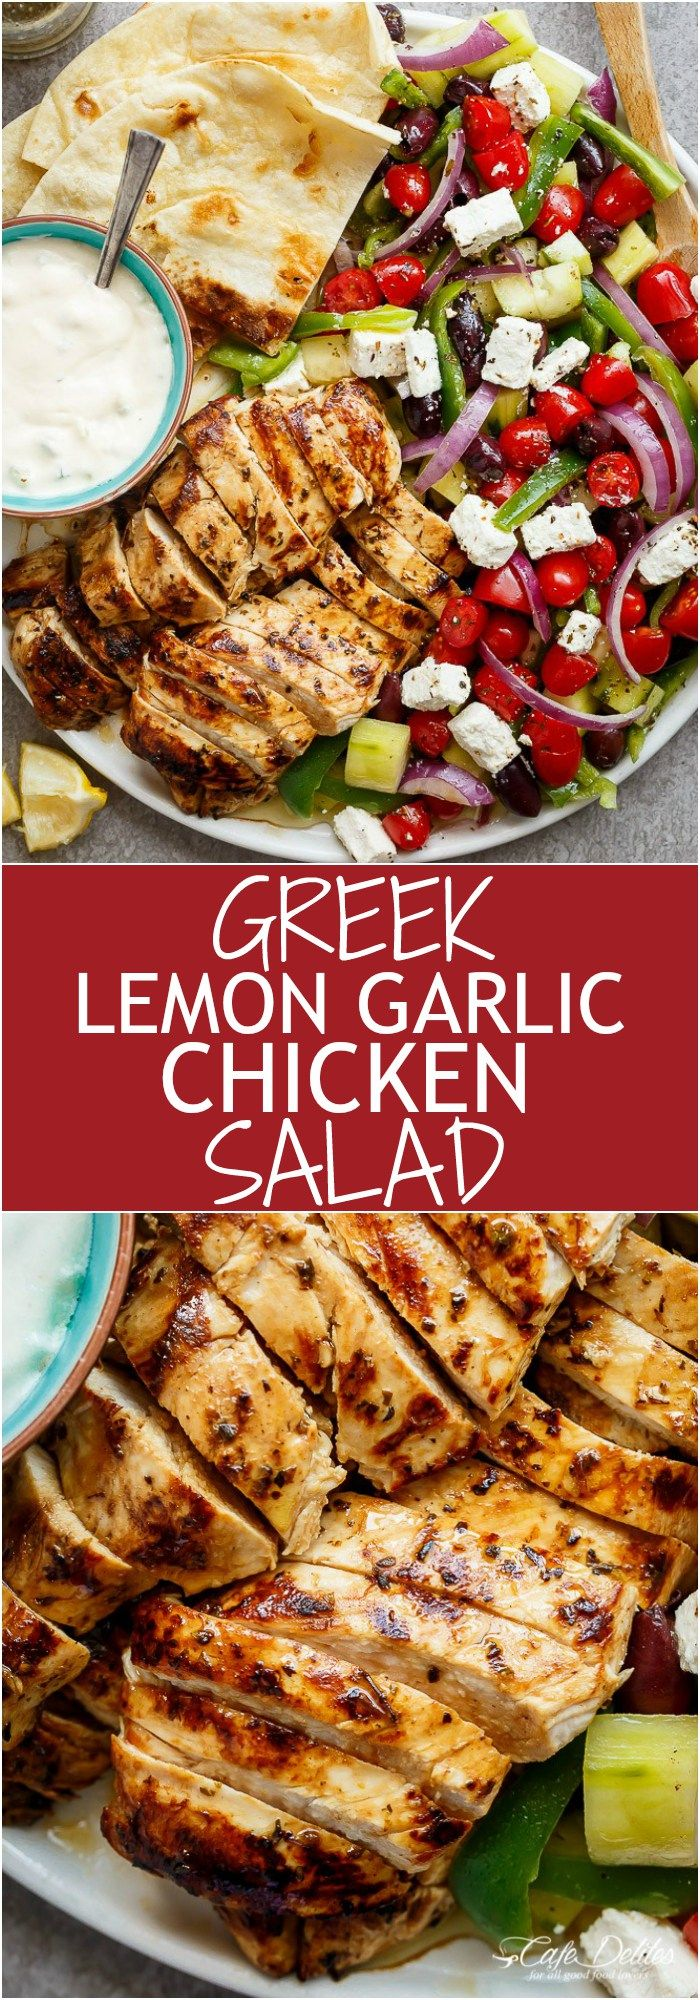 Greek Lemon Garlic Chicken Salad with an incredible dressing that doubles as a marinade! Complete with